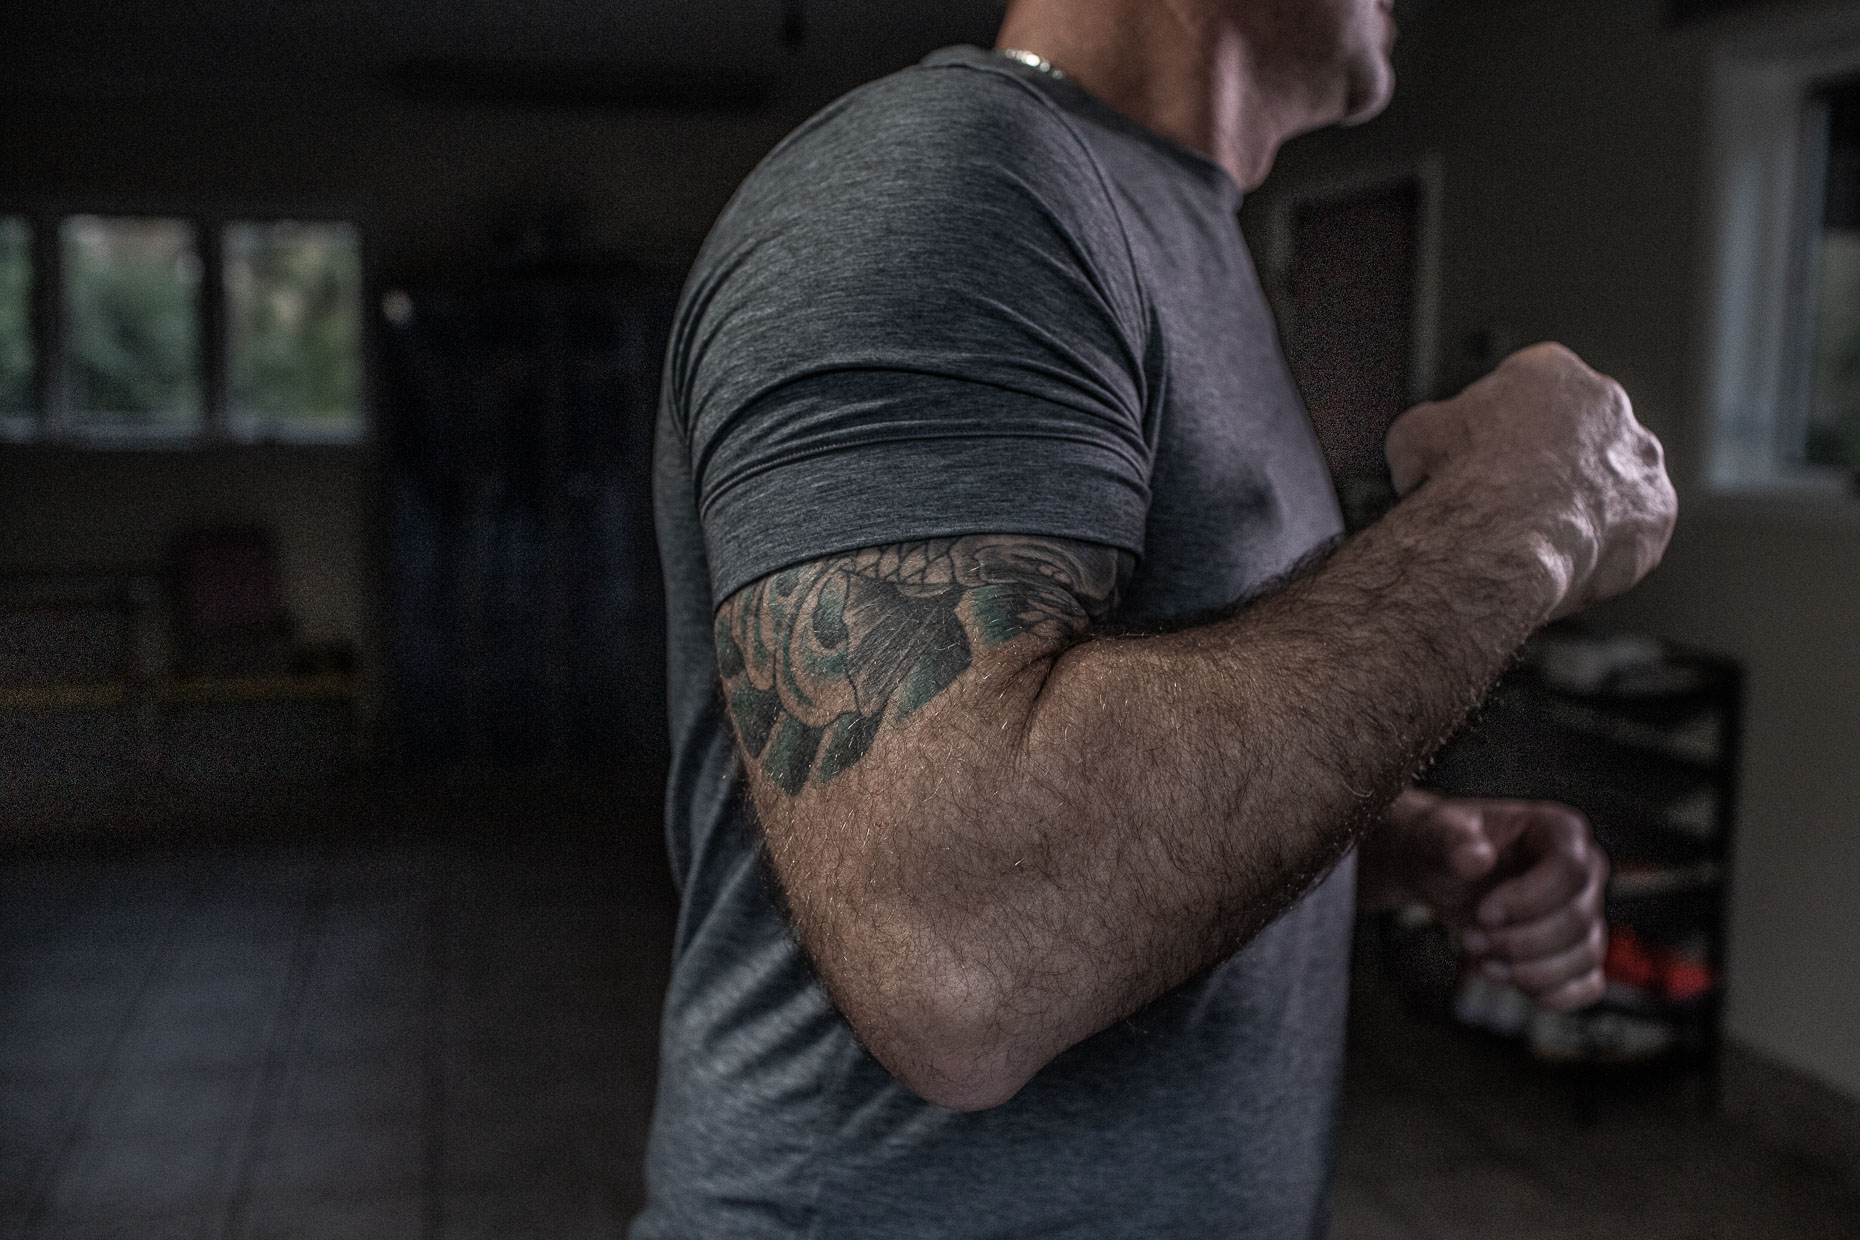 _MG_9203_man tattooed muscular arm in garage __RobertHolland